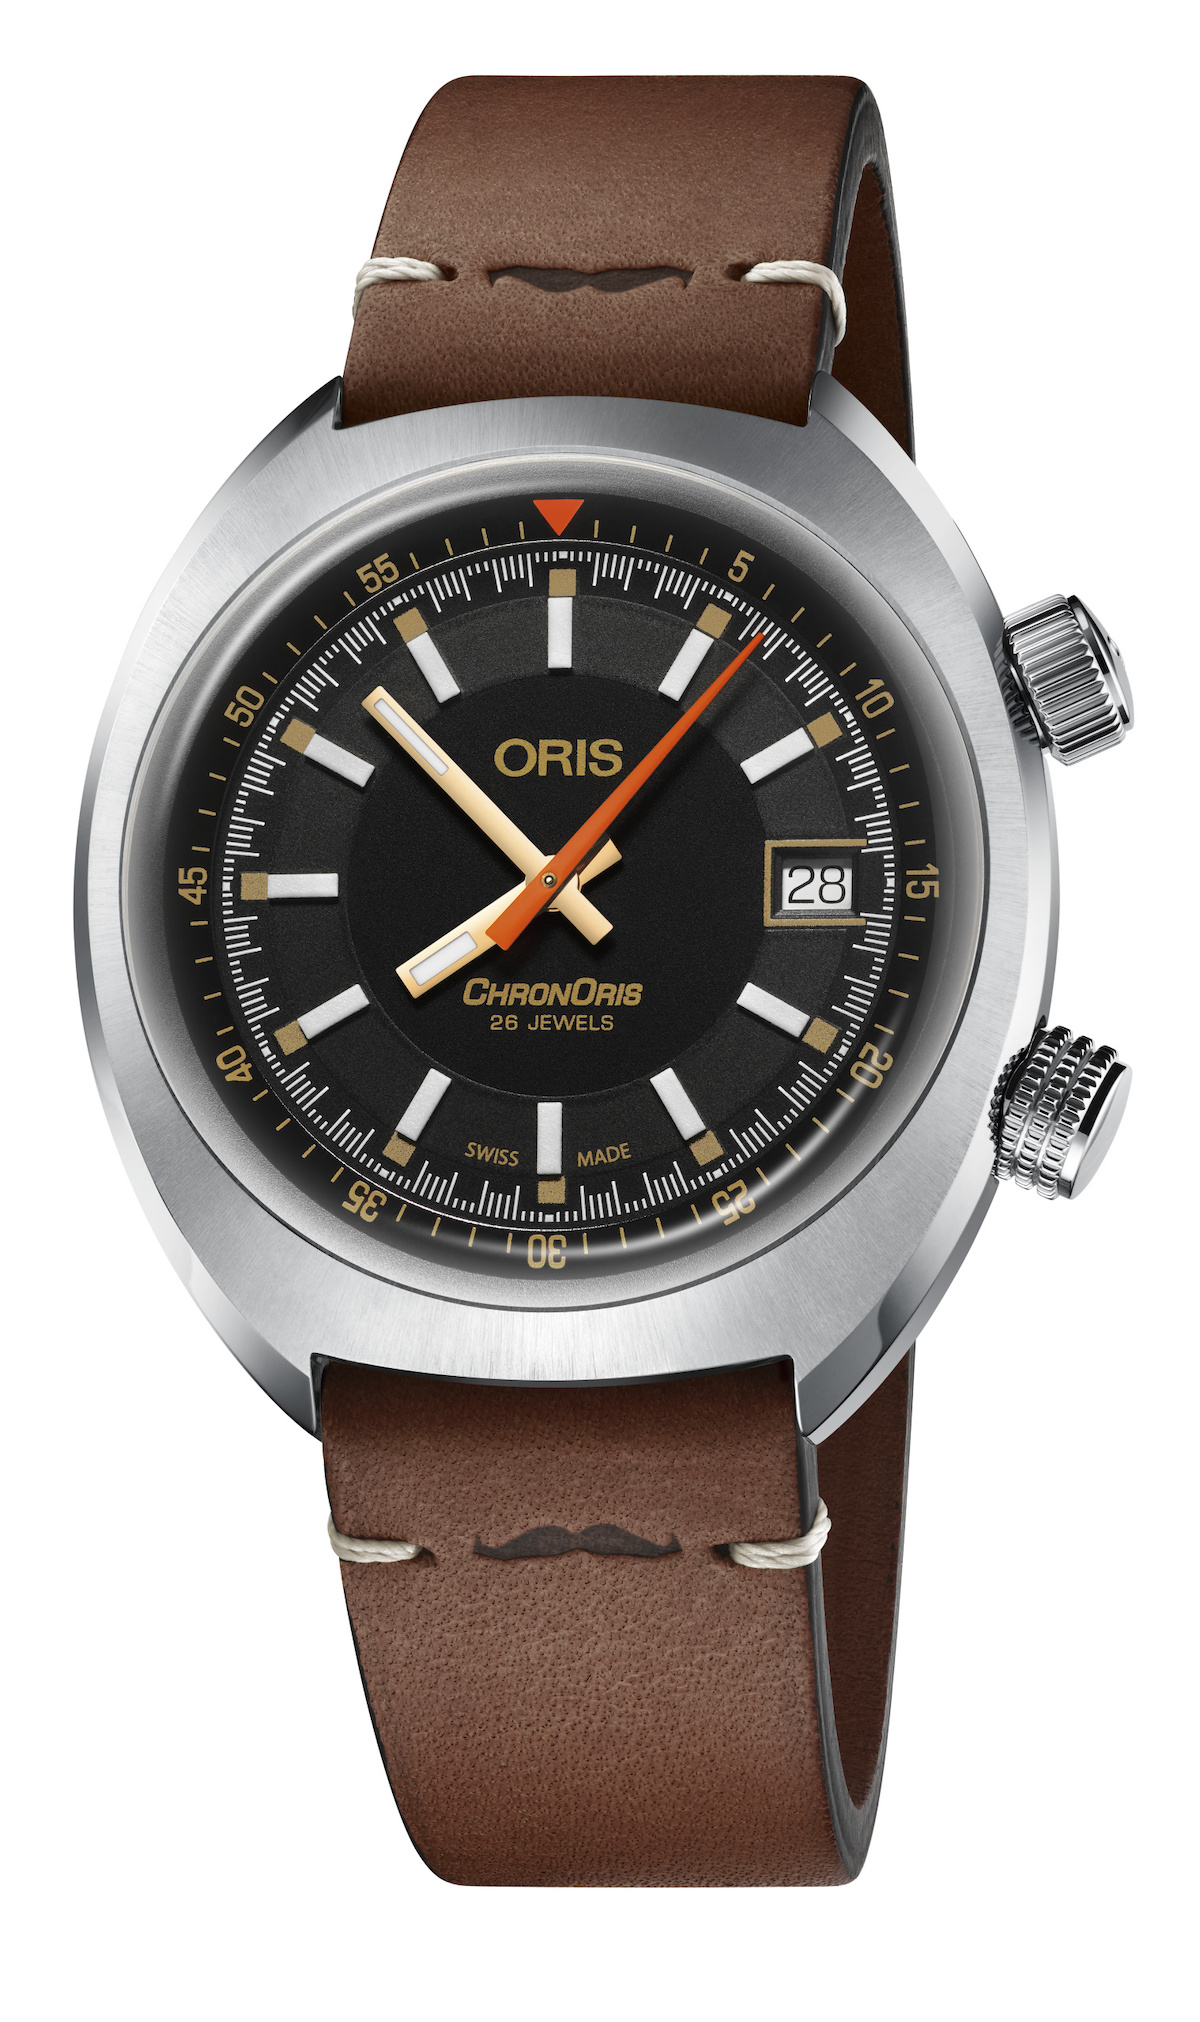 Oris Movember Chronoris